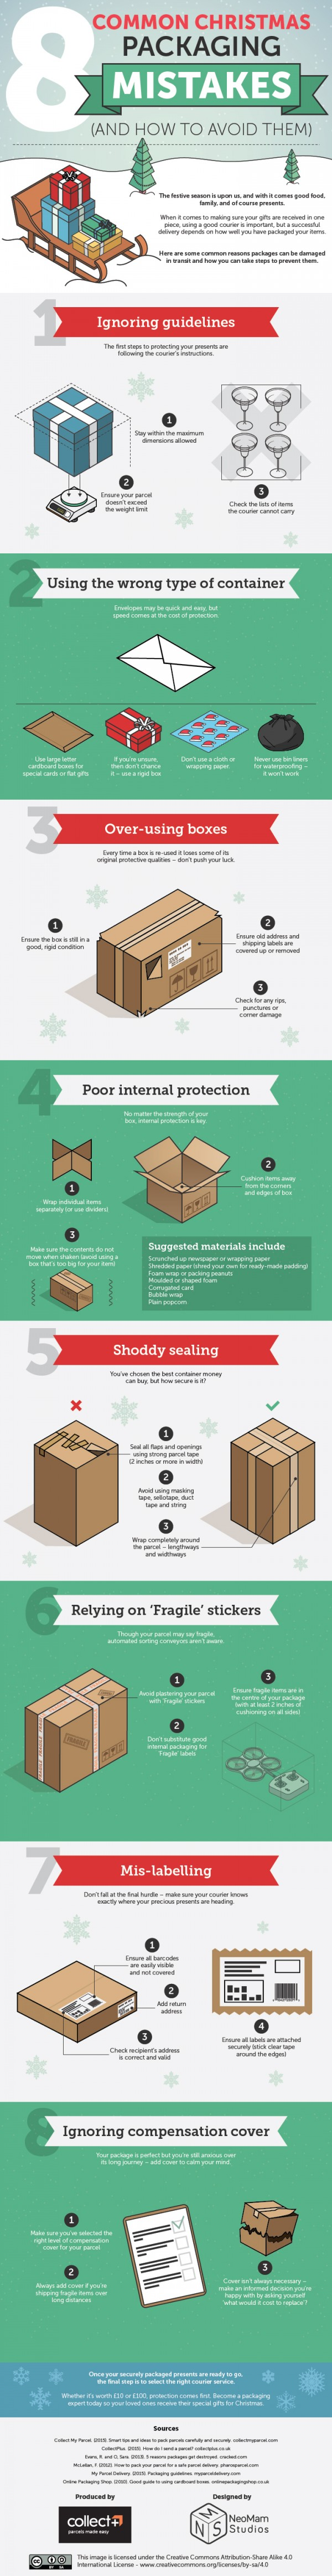 Packaging-mistakes-Christmas-edition